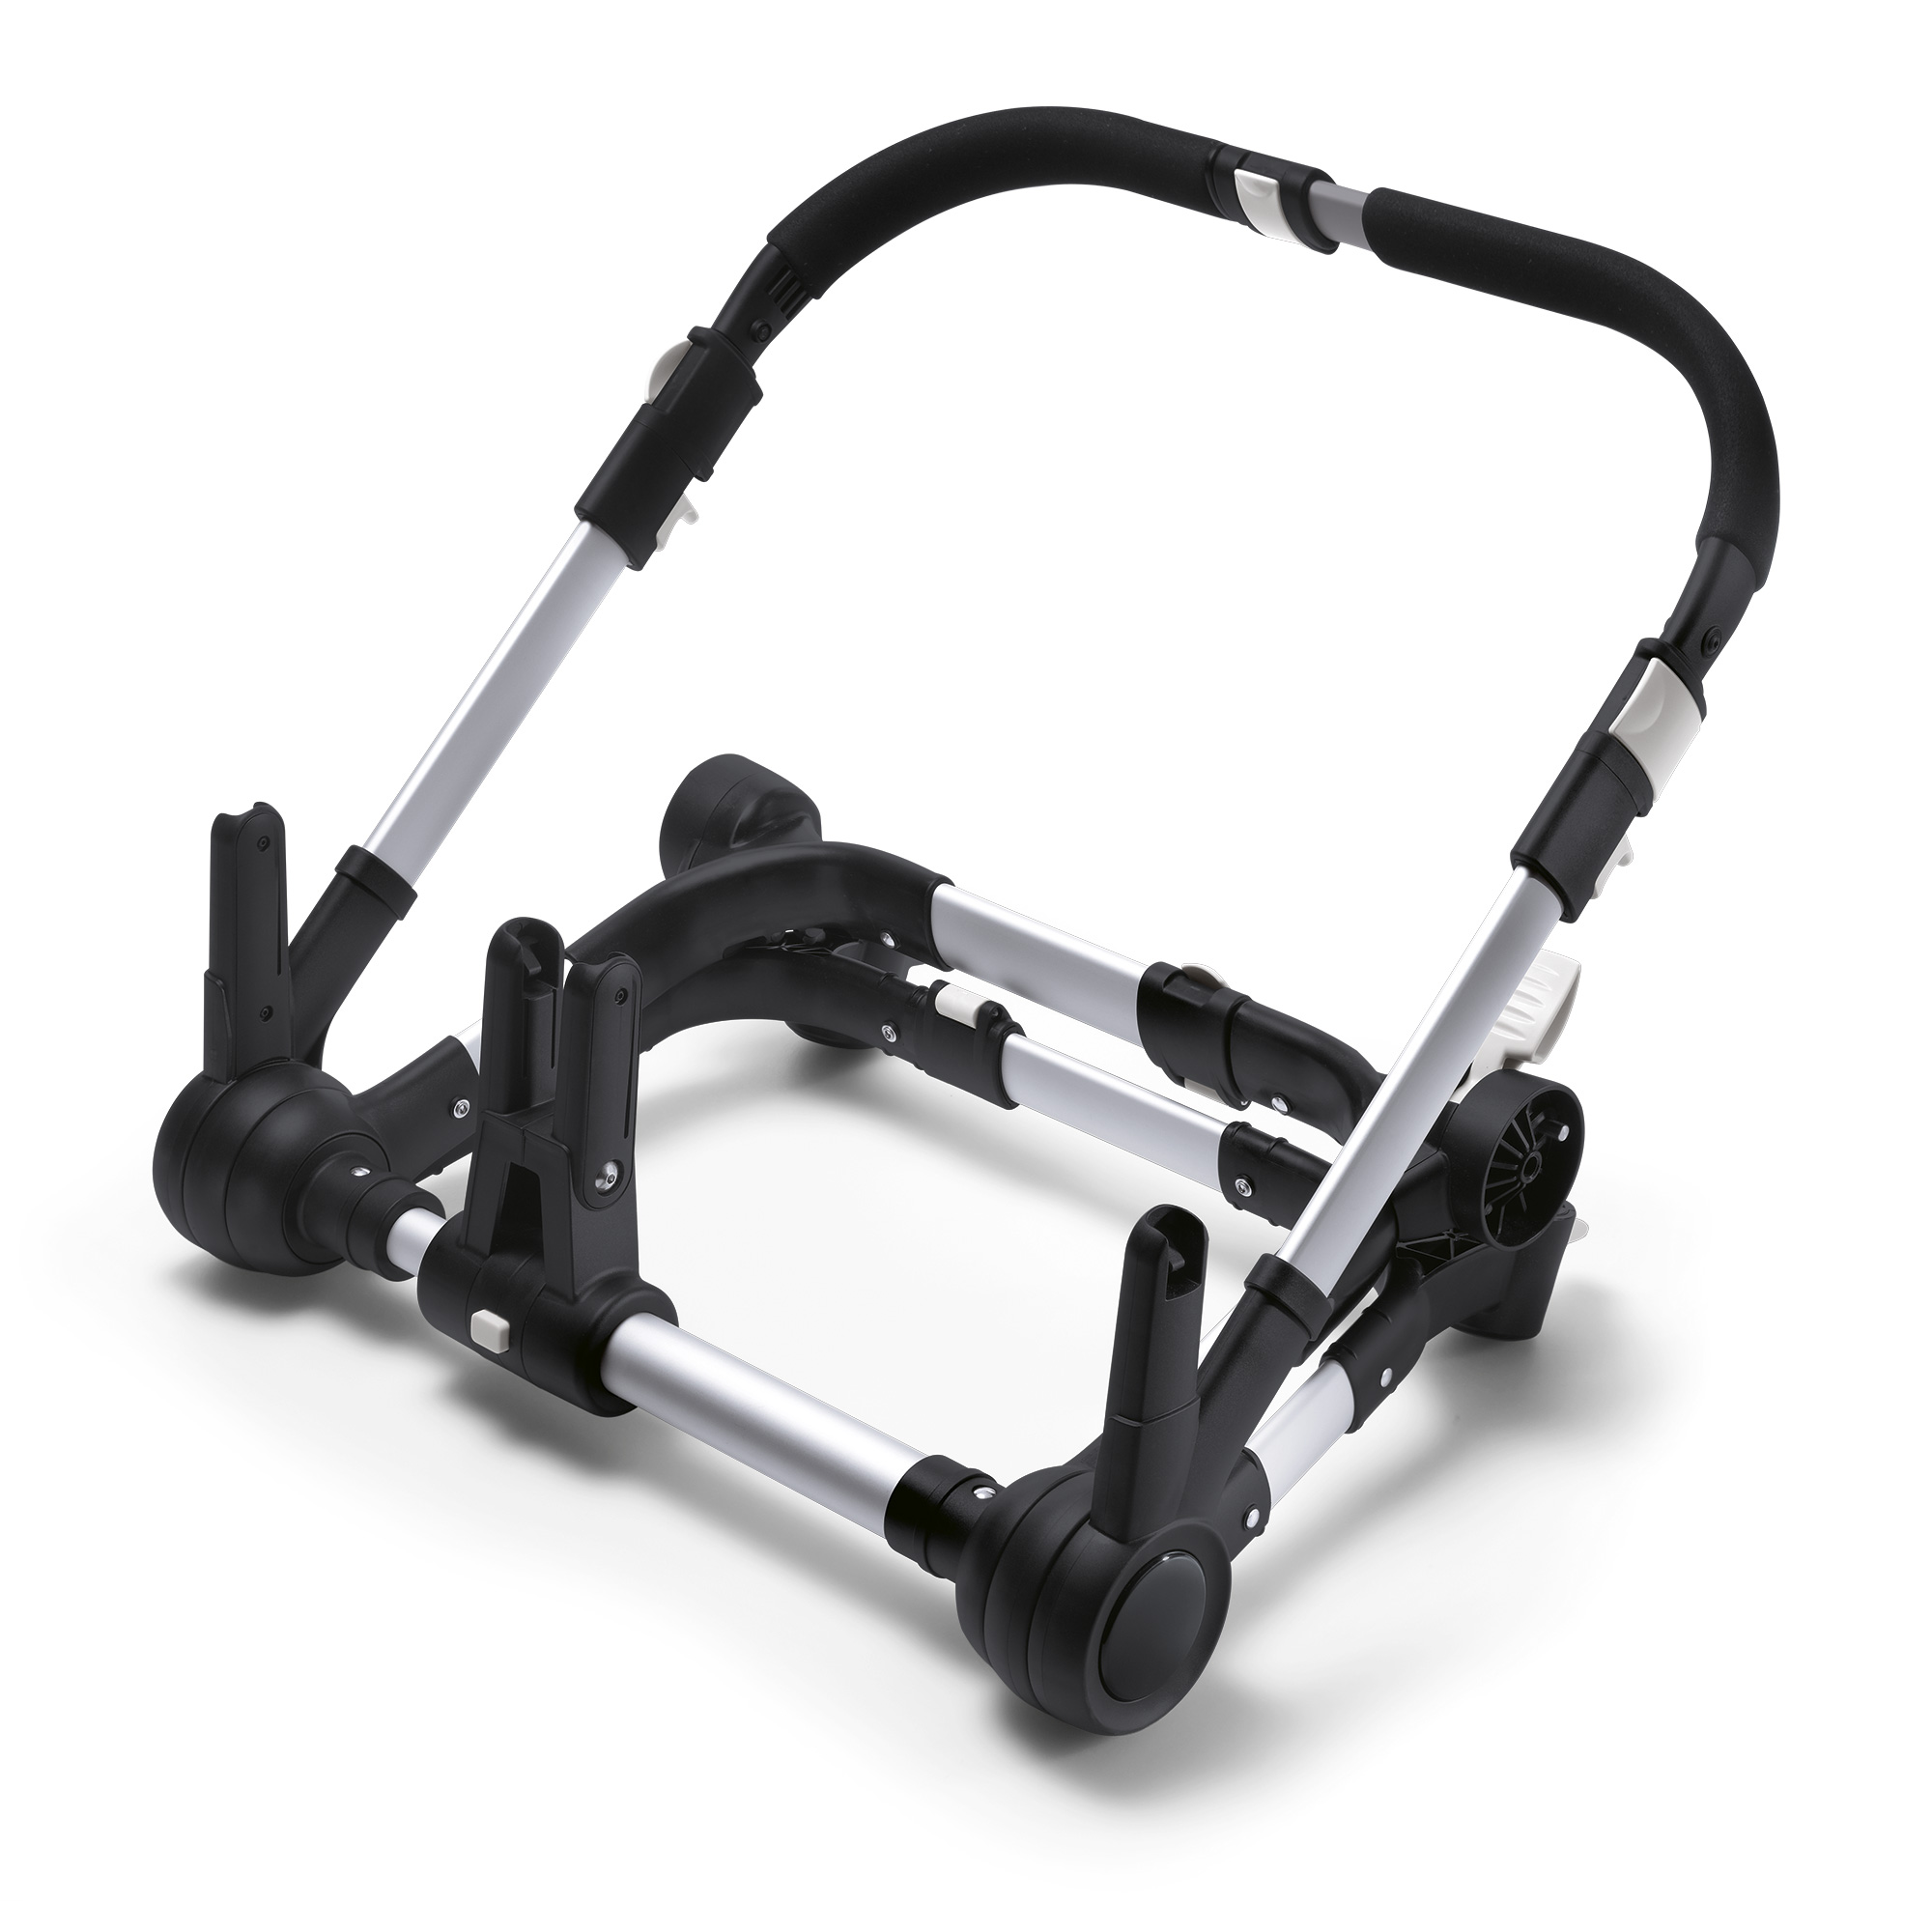 Bugaboo Stroller How To Fold Bugaboo Donkey Chassis With Compact Fold Version 2 Bugaboo Sk